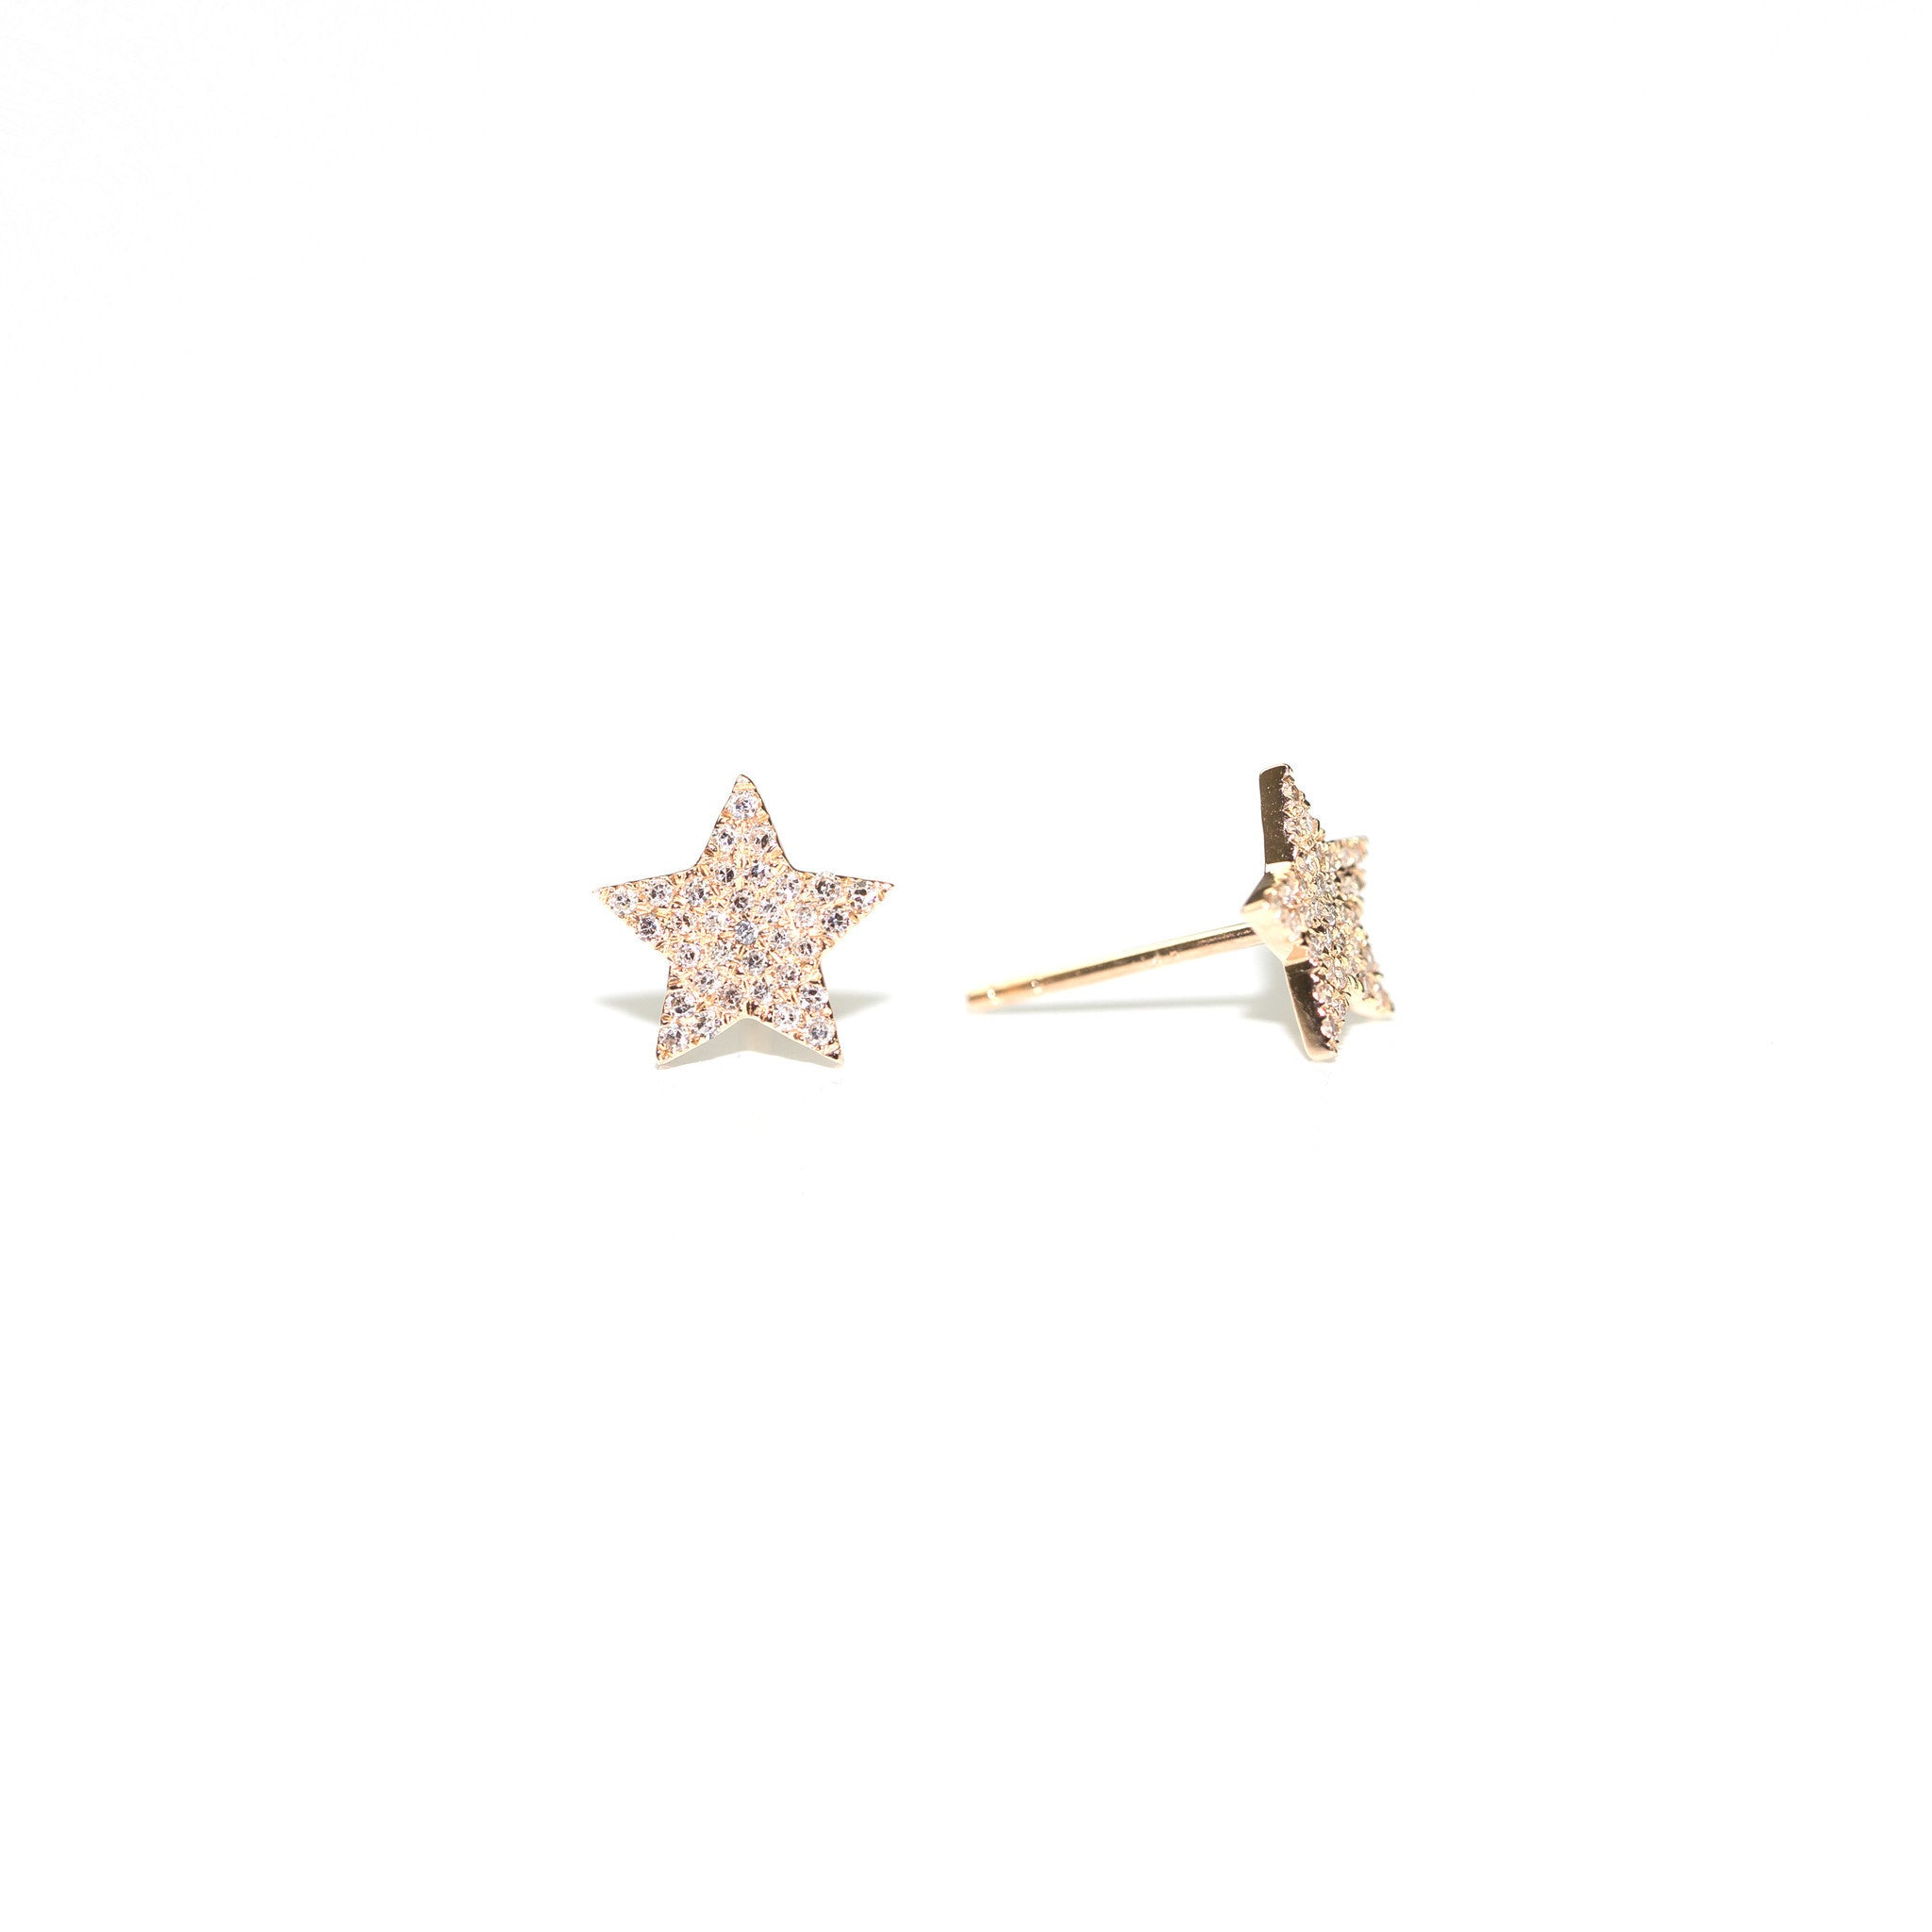 cut princesscut earrings stud solitaire p t white v princess in w diamond gold tw ct